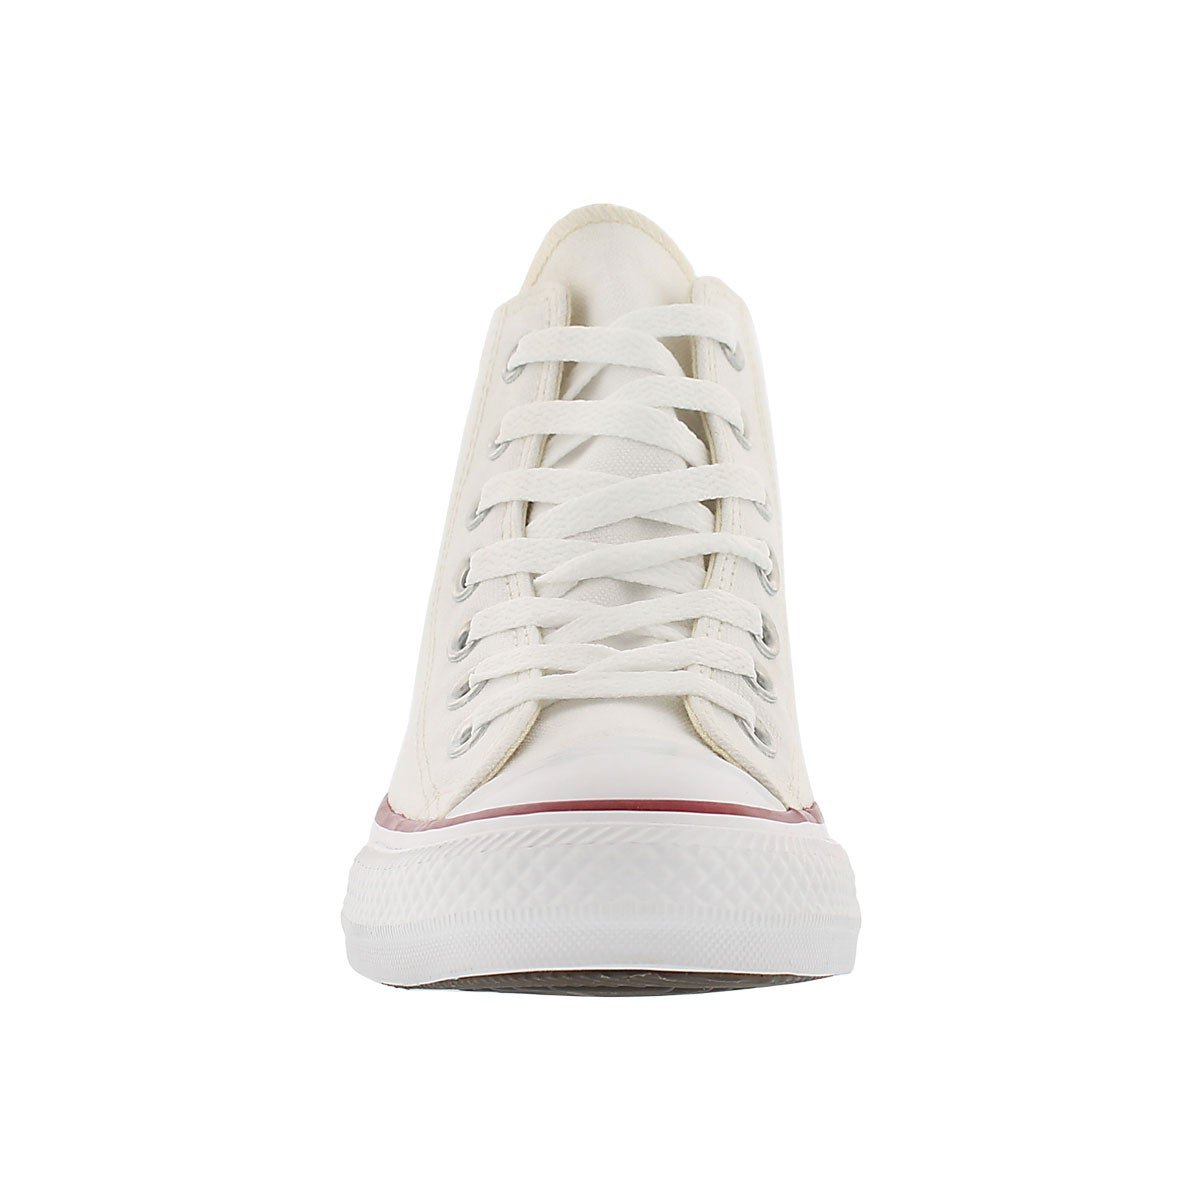 Lds CT All Star Canvas Lux Mid wht